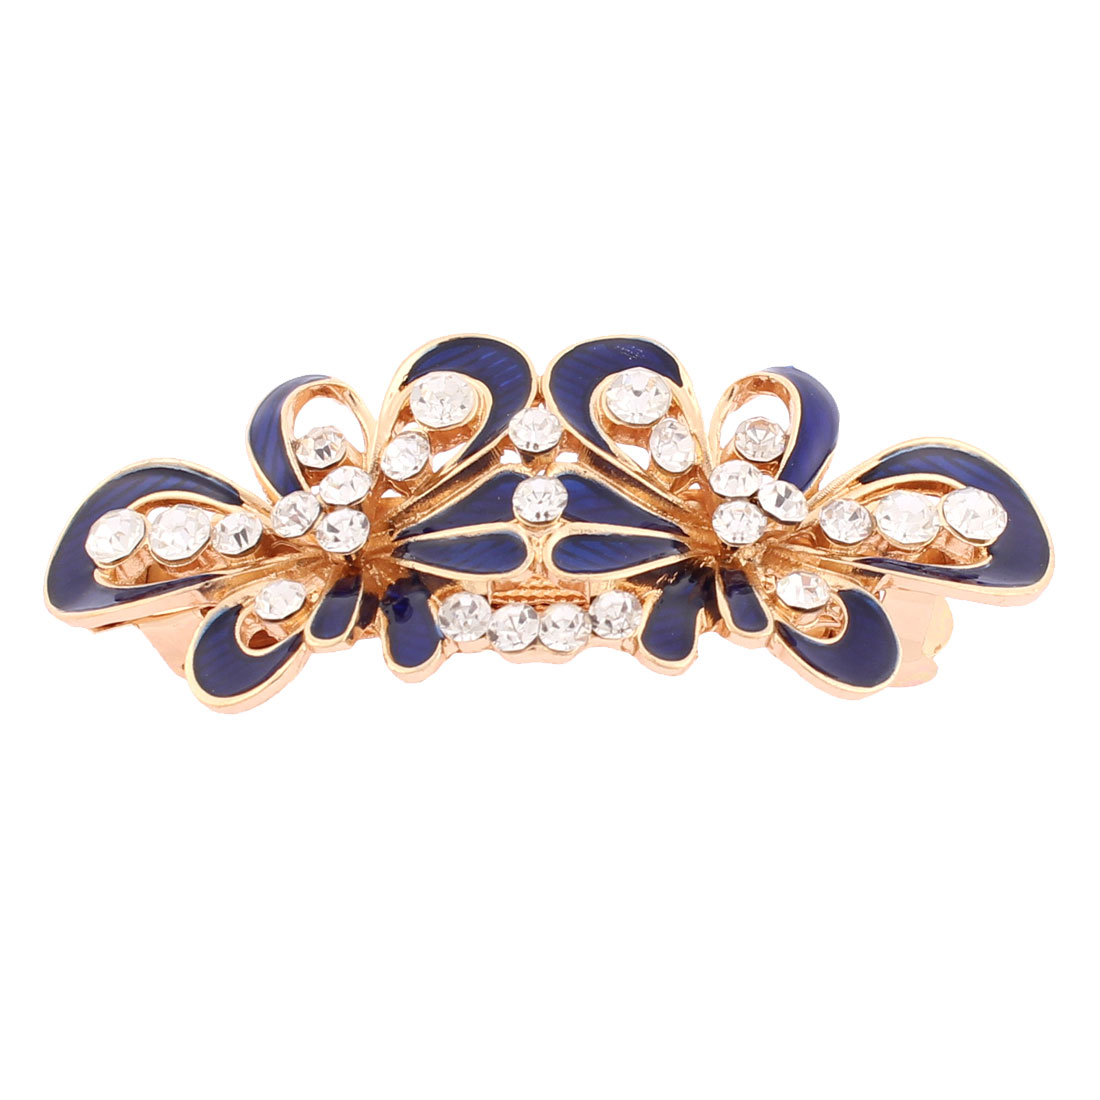 Women Plastic Rhinestone Inlaid Flower Design French Barrette Style Metal Hair Clip Hairpin Gold Tone Blue